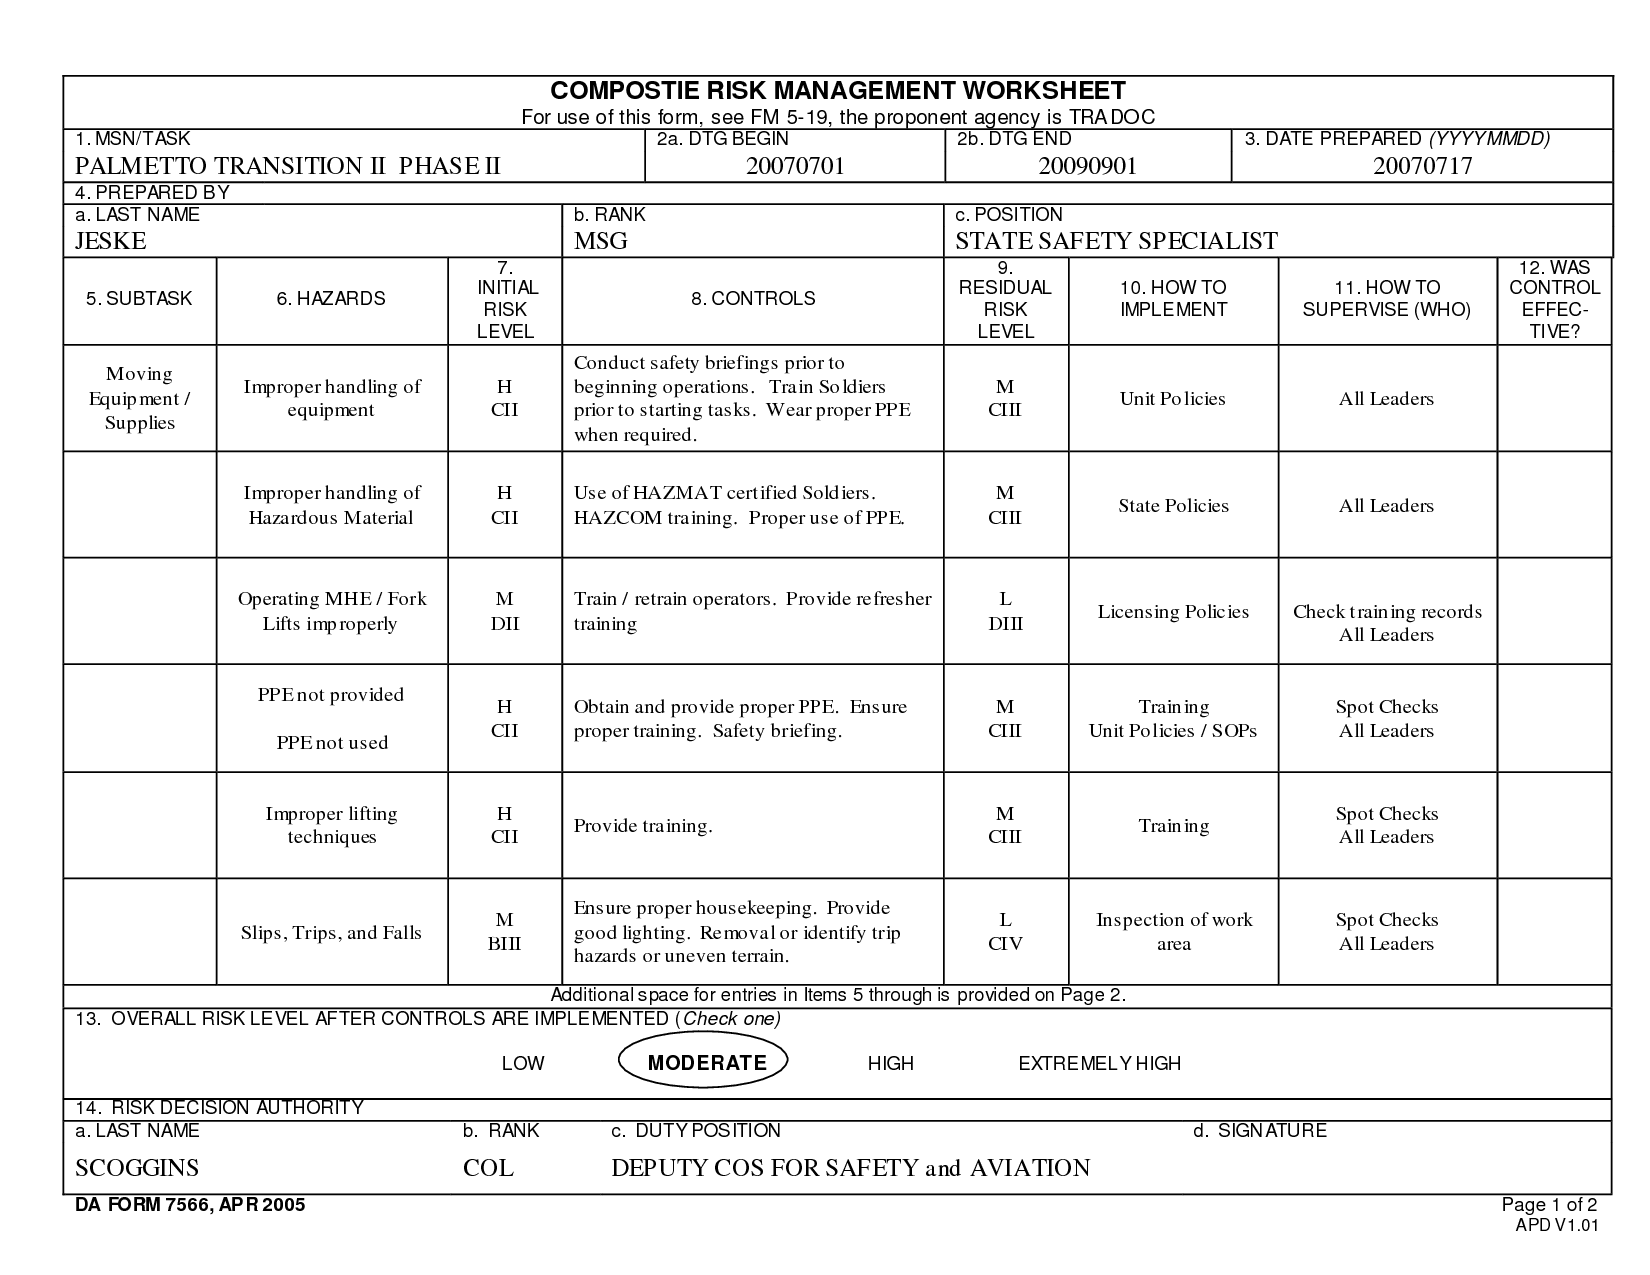 Printables Composite Risk Management Worksheet Fillable army risk management worksheet davezan example davezan